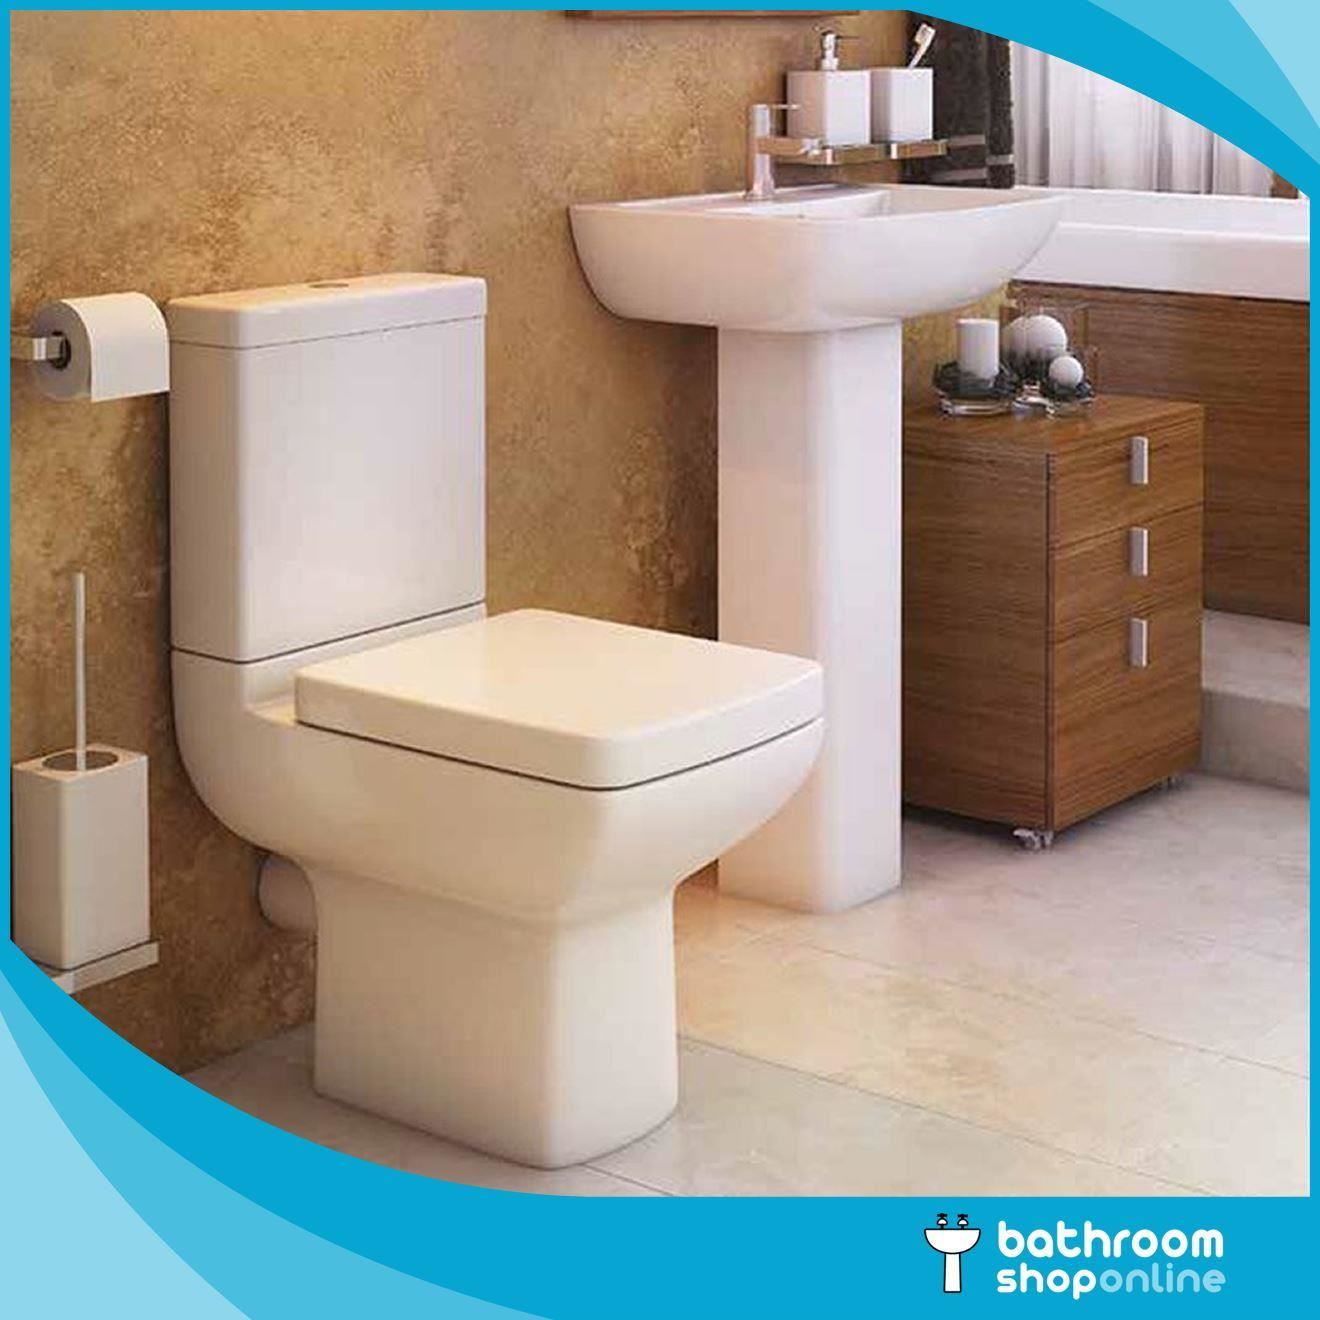 P Shaped Bathroom Suite Right/Left Hand 1700 Bath BTW Toilet WC ...